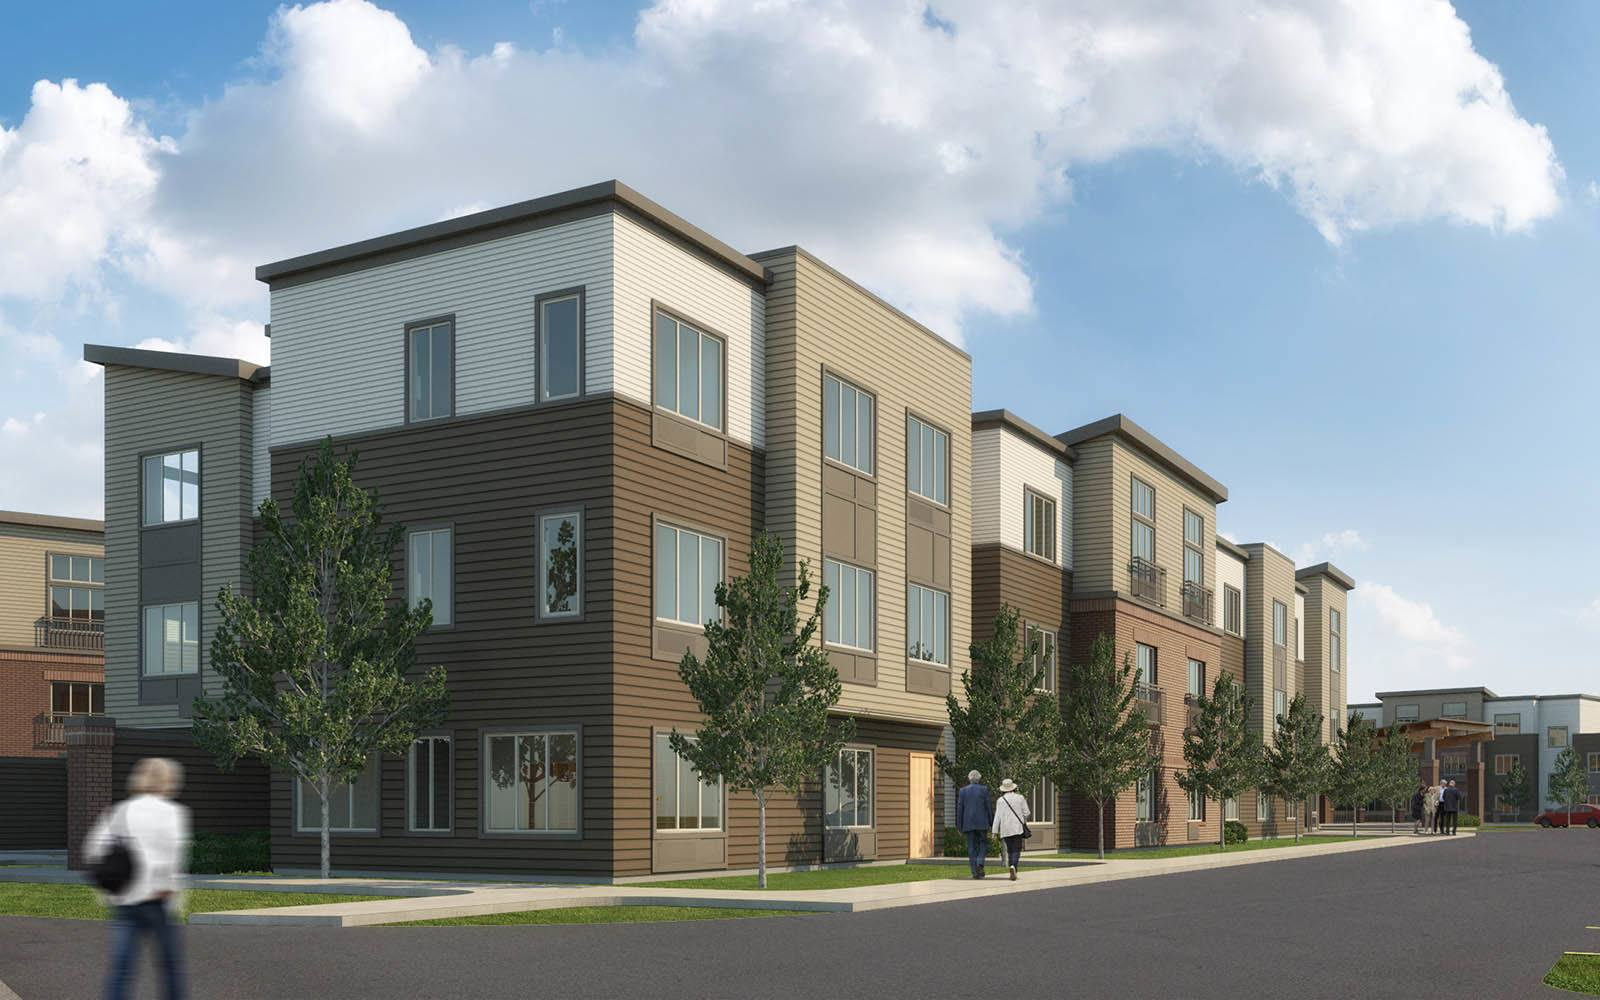 Rendering Of Our Building Exterior at Brightwater Senior Living of Capital Crossing in Regina, SK